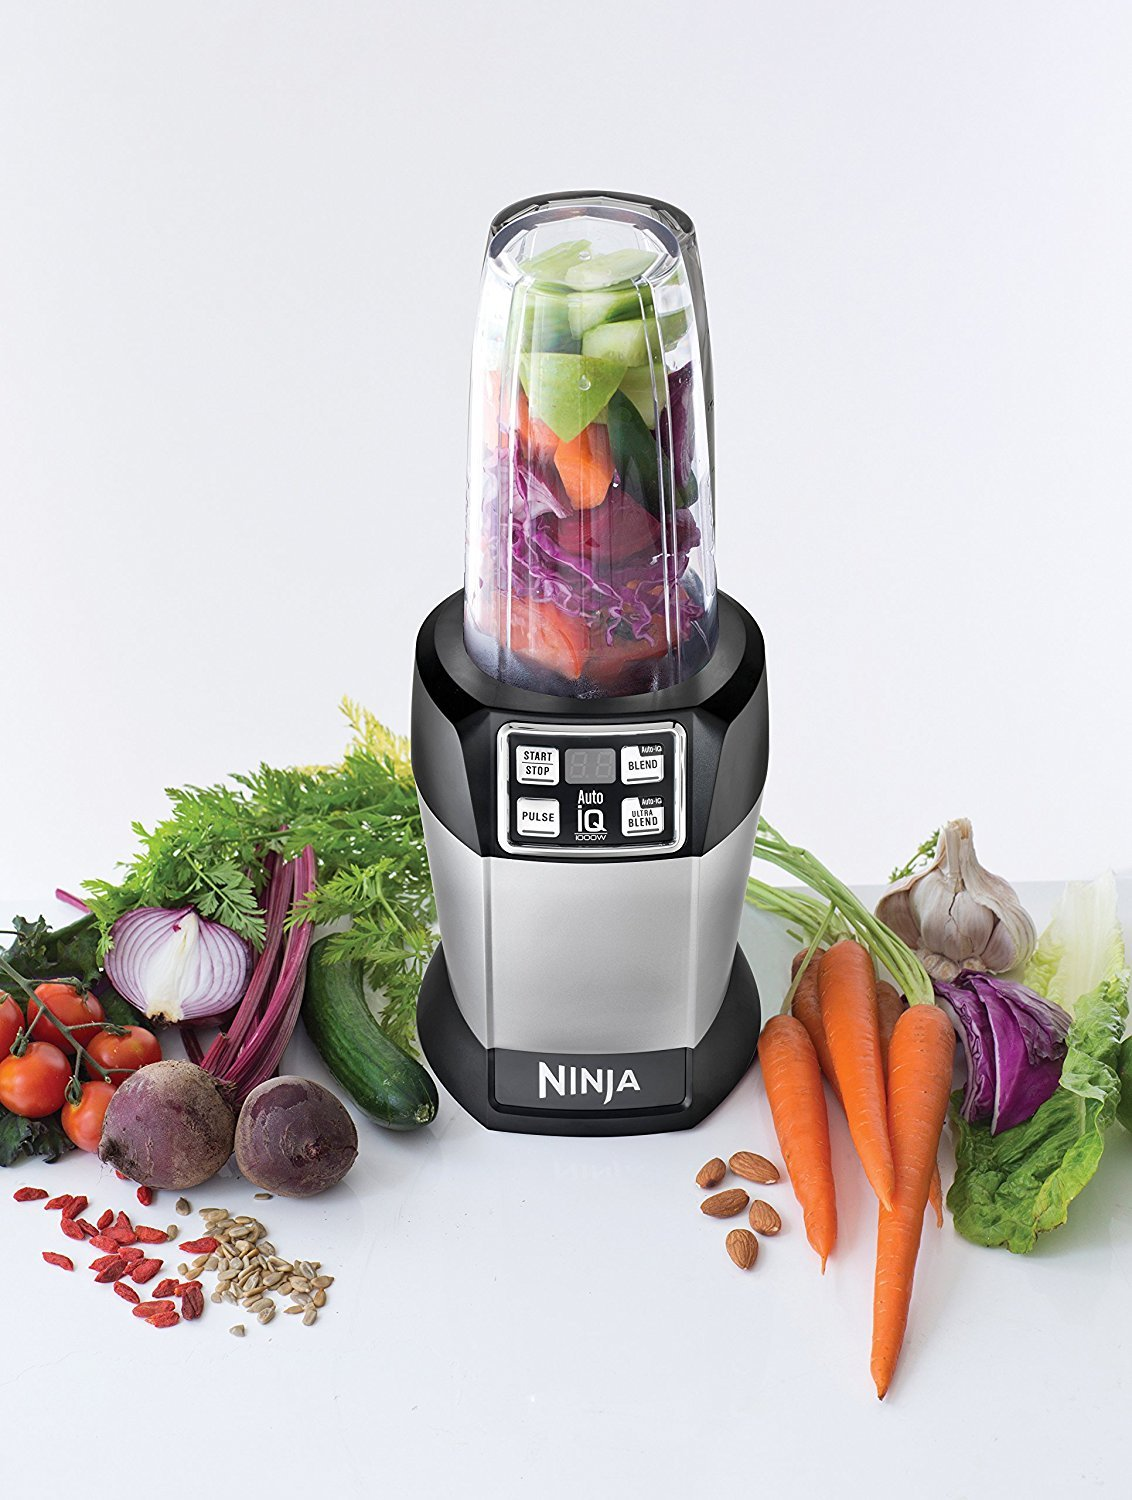 Renewed Nutri Ninja BL480D Personal Blender with 1000-Watt Auto-iQ Base to Extract Nutrients for Smoothies Juices and Shakes and 18 and 24-Ounce Cups//FREE NUTEK EARBUDS